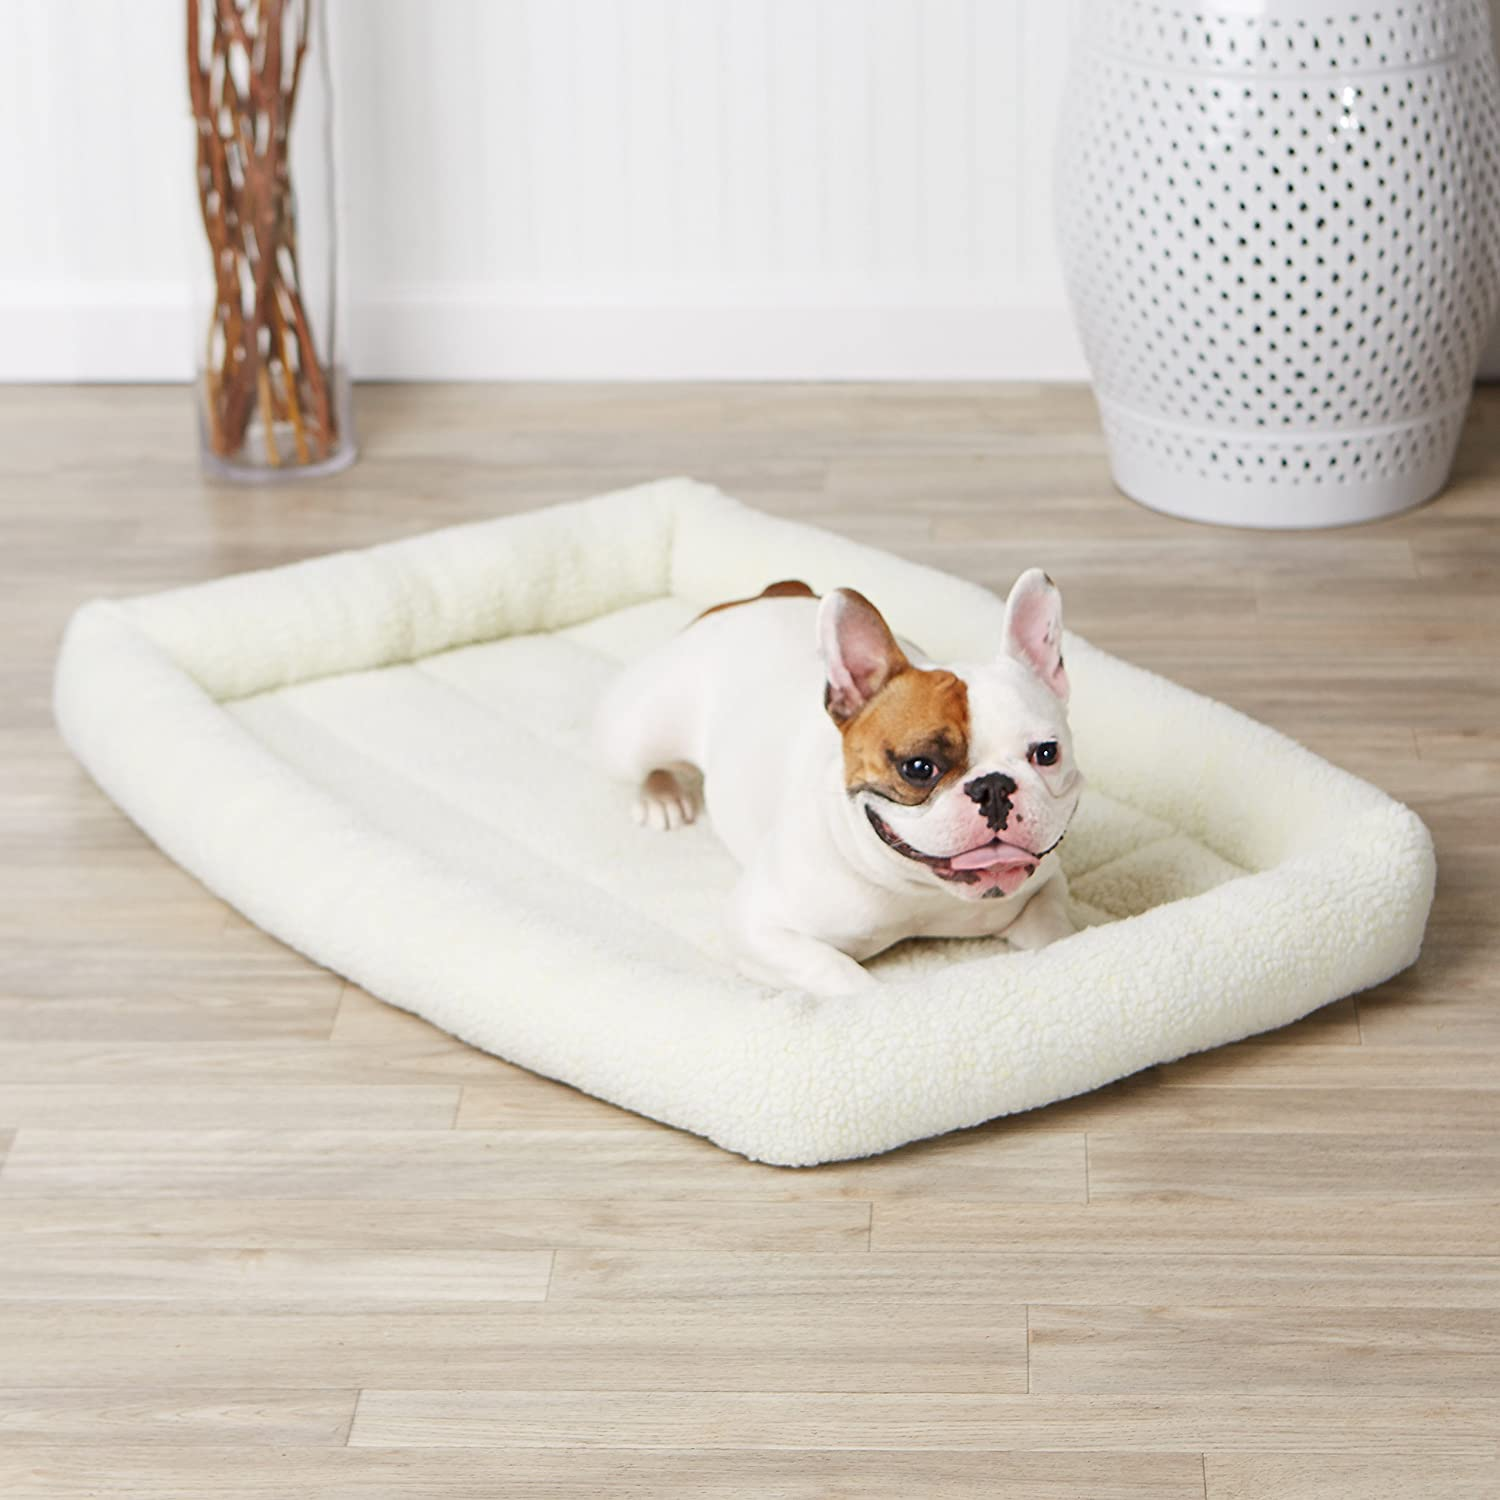 Top 10 Best Sofa Bed for Dogs Dog Sofa Beds Review